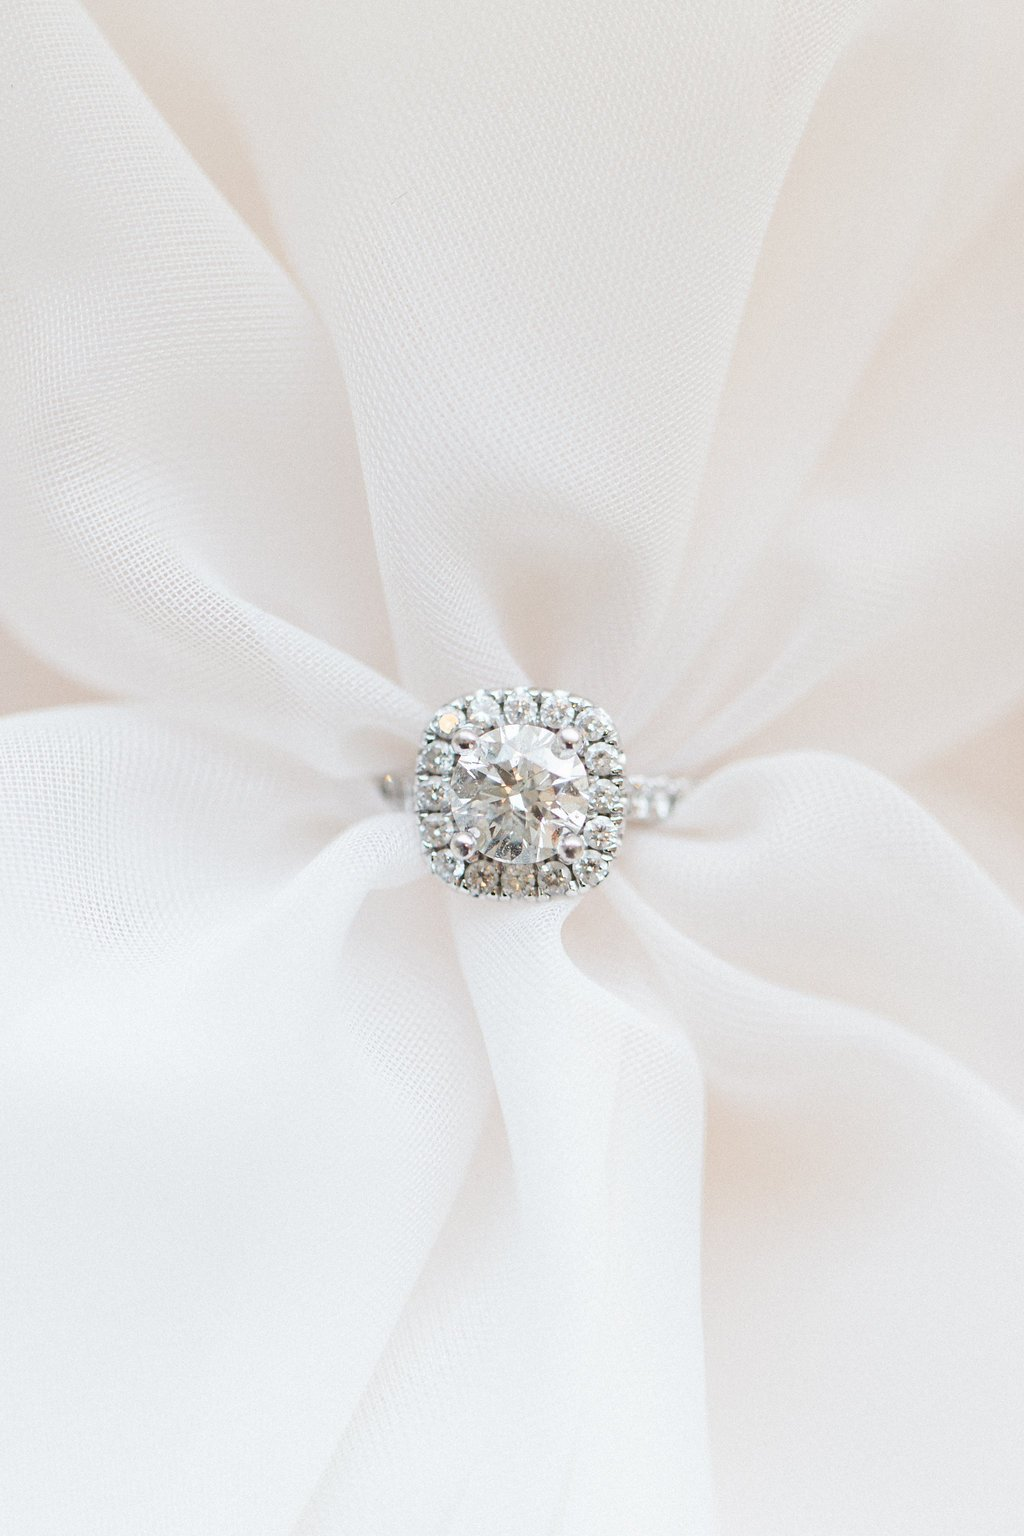 Engagement ring diamond halo bridal boudoir photography